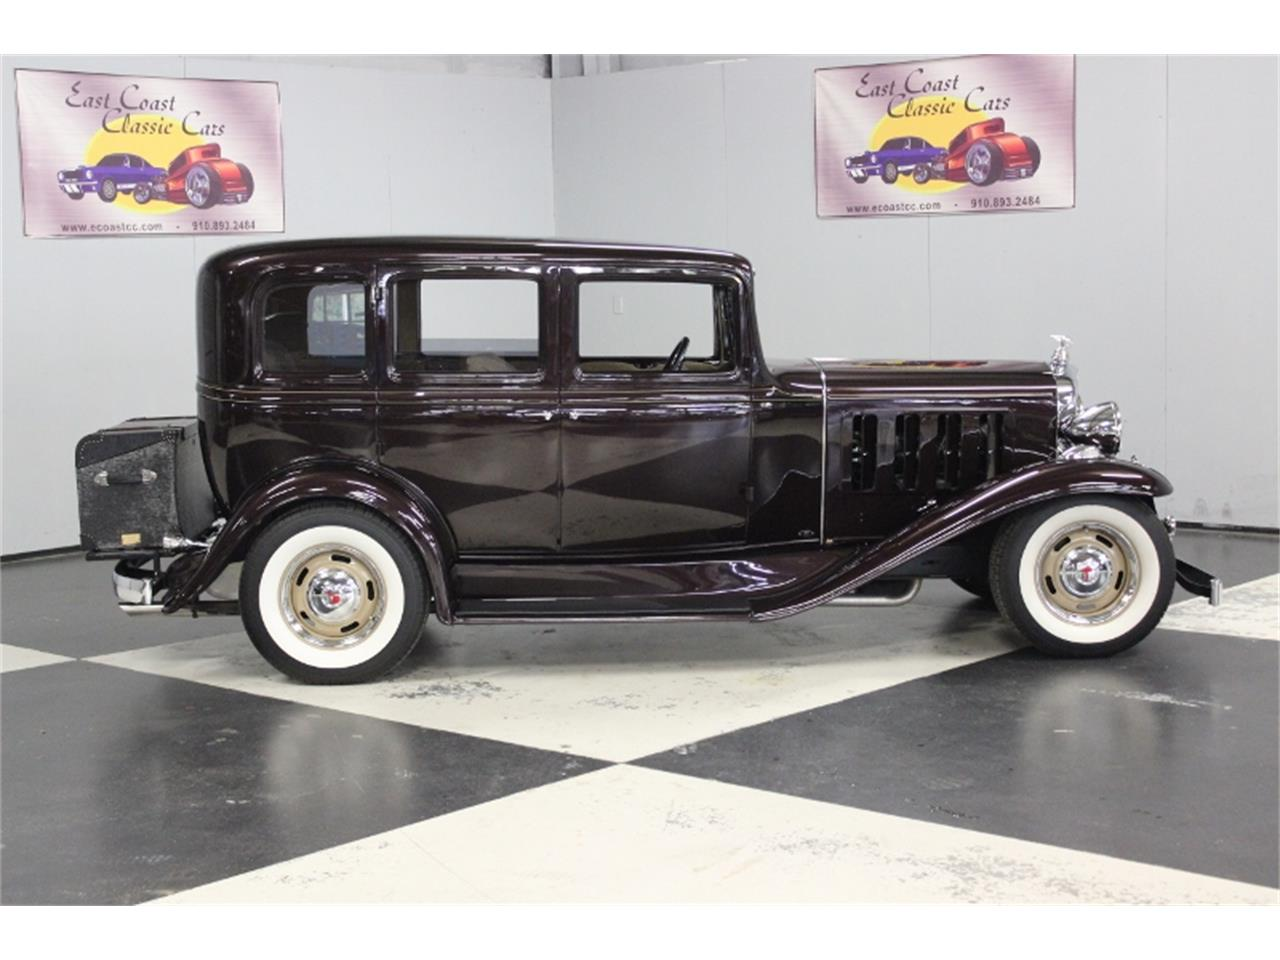 Large Picture of Classic 1932 Pontiac Sedan - $45,000.00 Offered by East Coast Classic Cars - OTPB